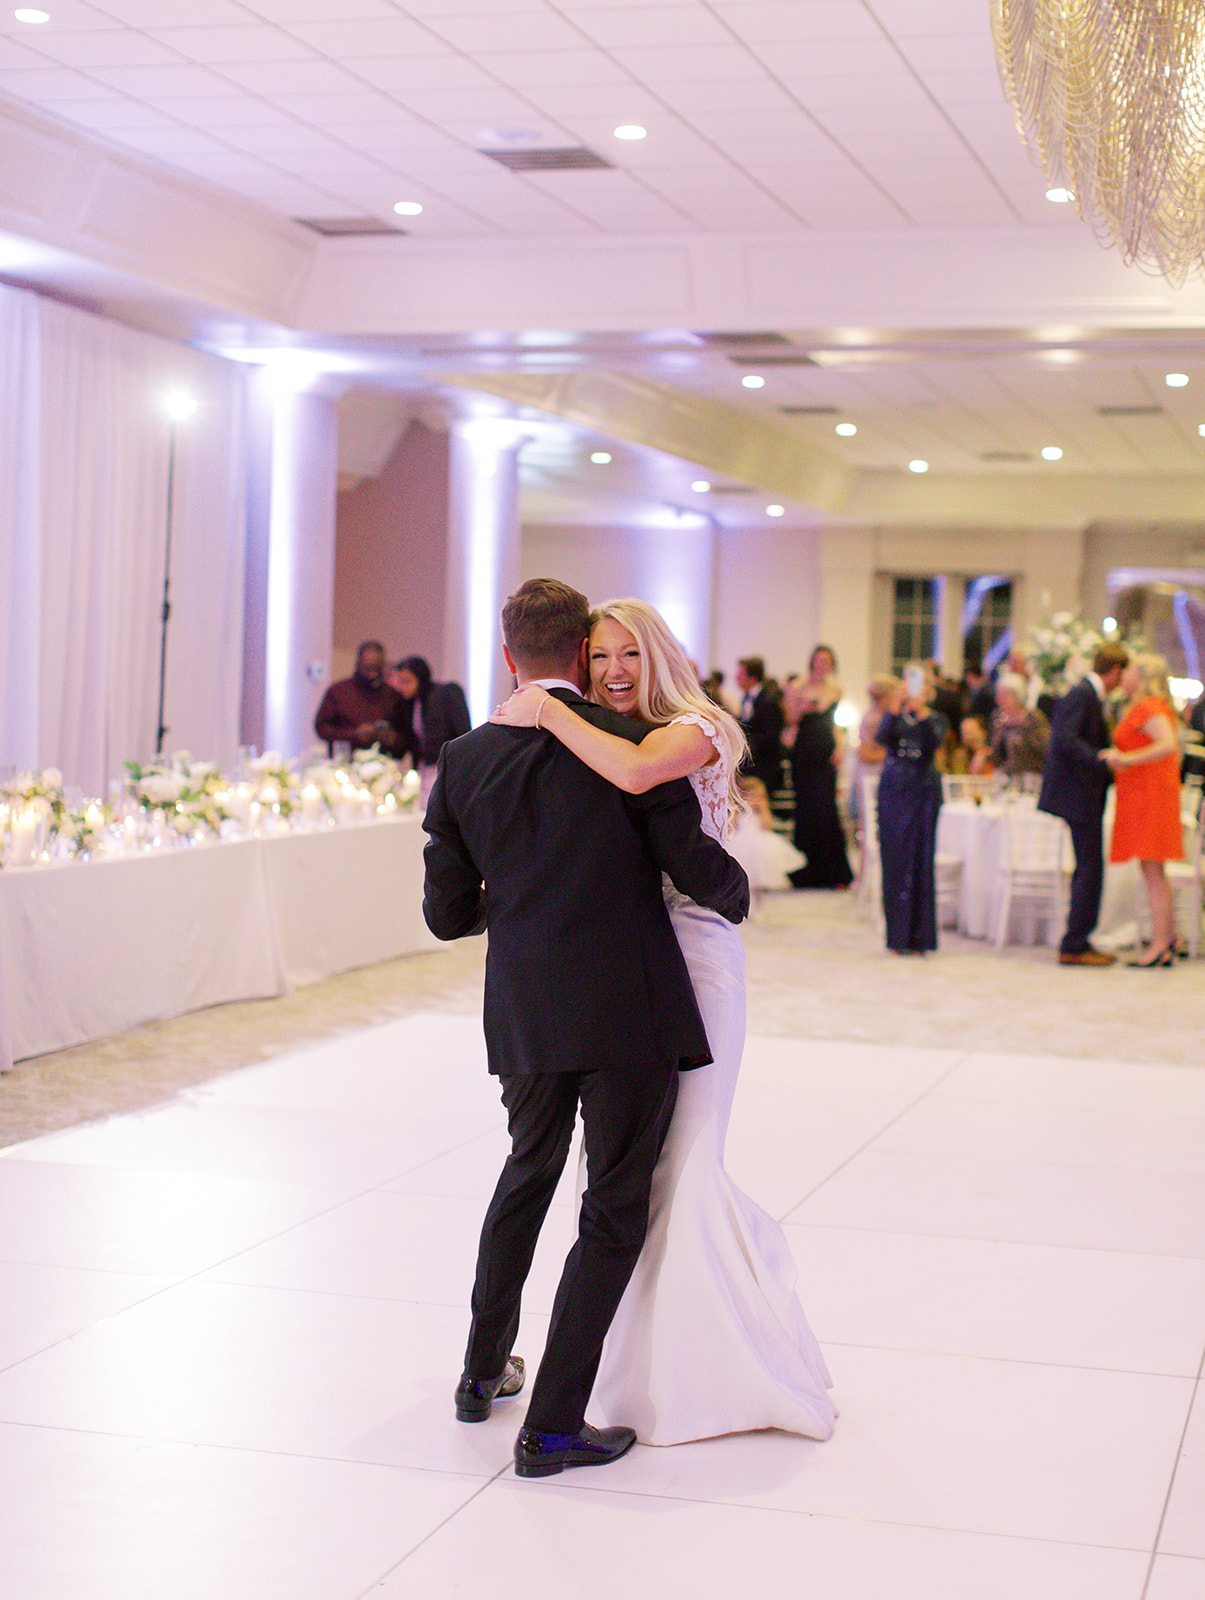 Bride smiling dancing with her husband